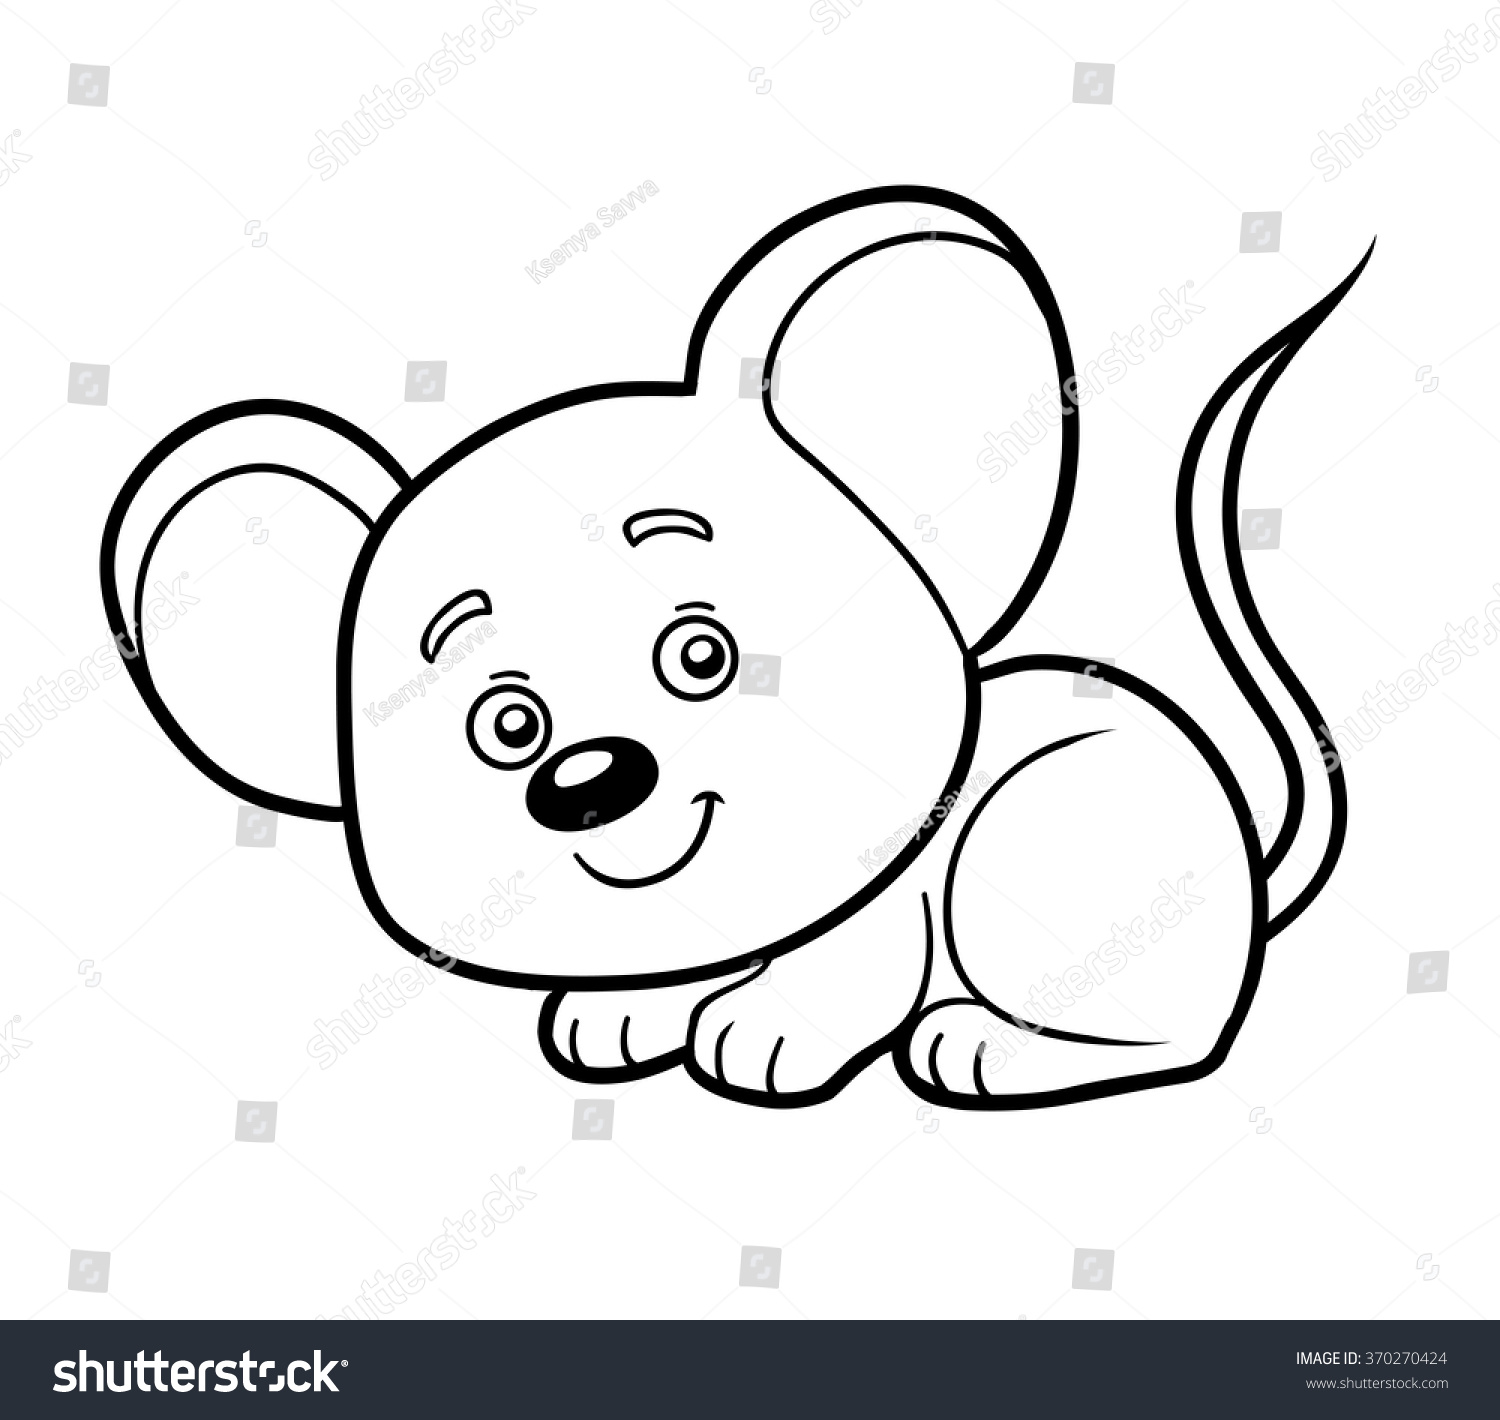 coloring book for children mouse